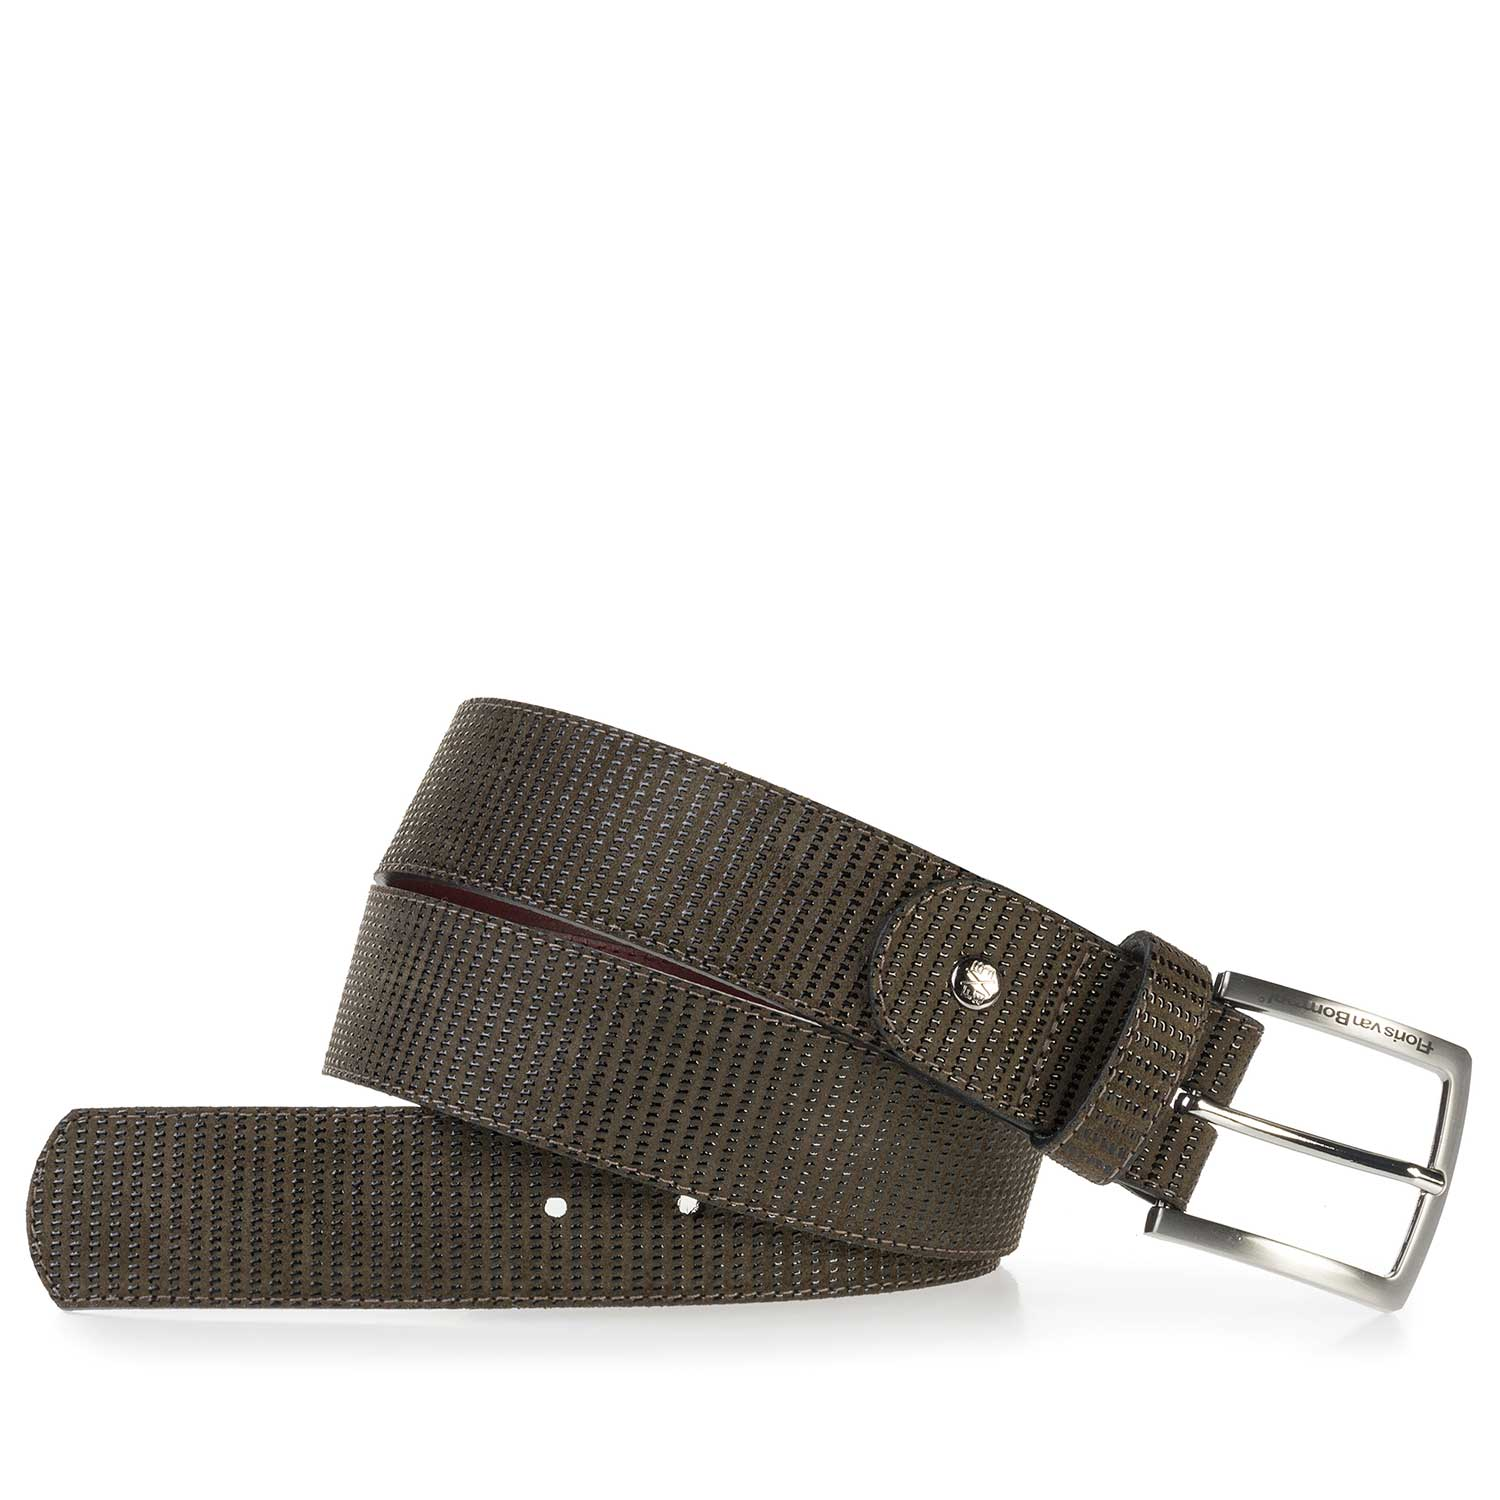 75184/00 - Olive green, printed suede leather belt